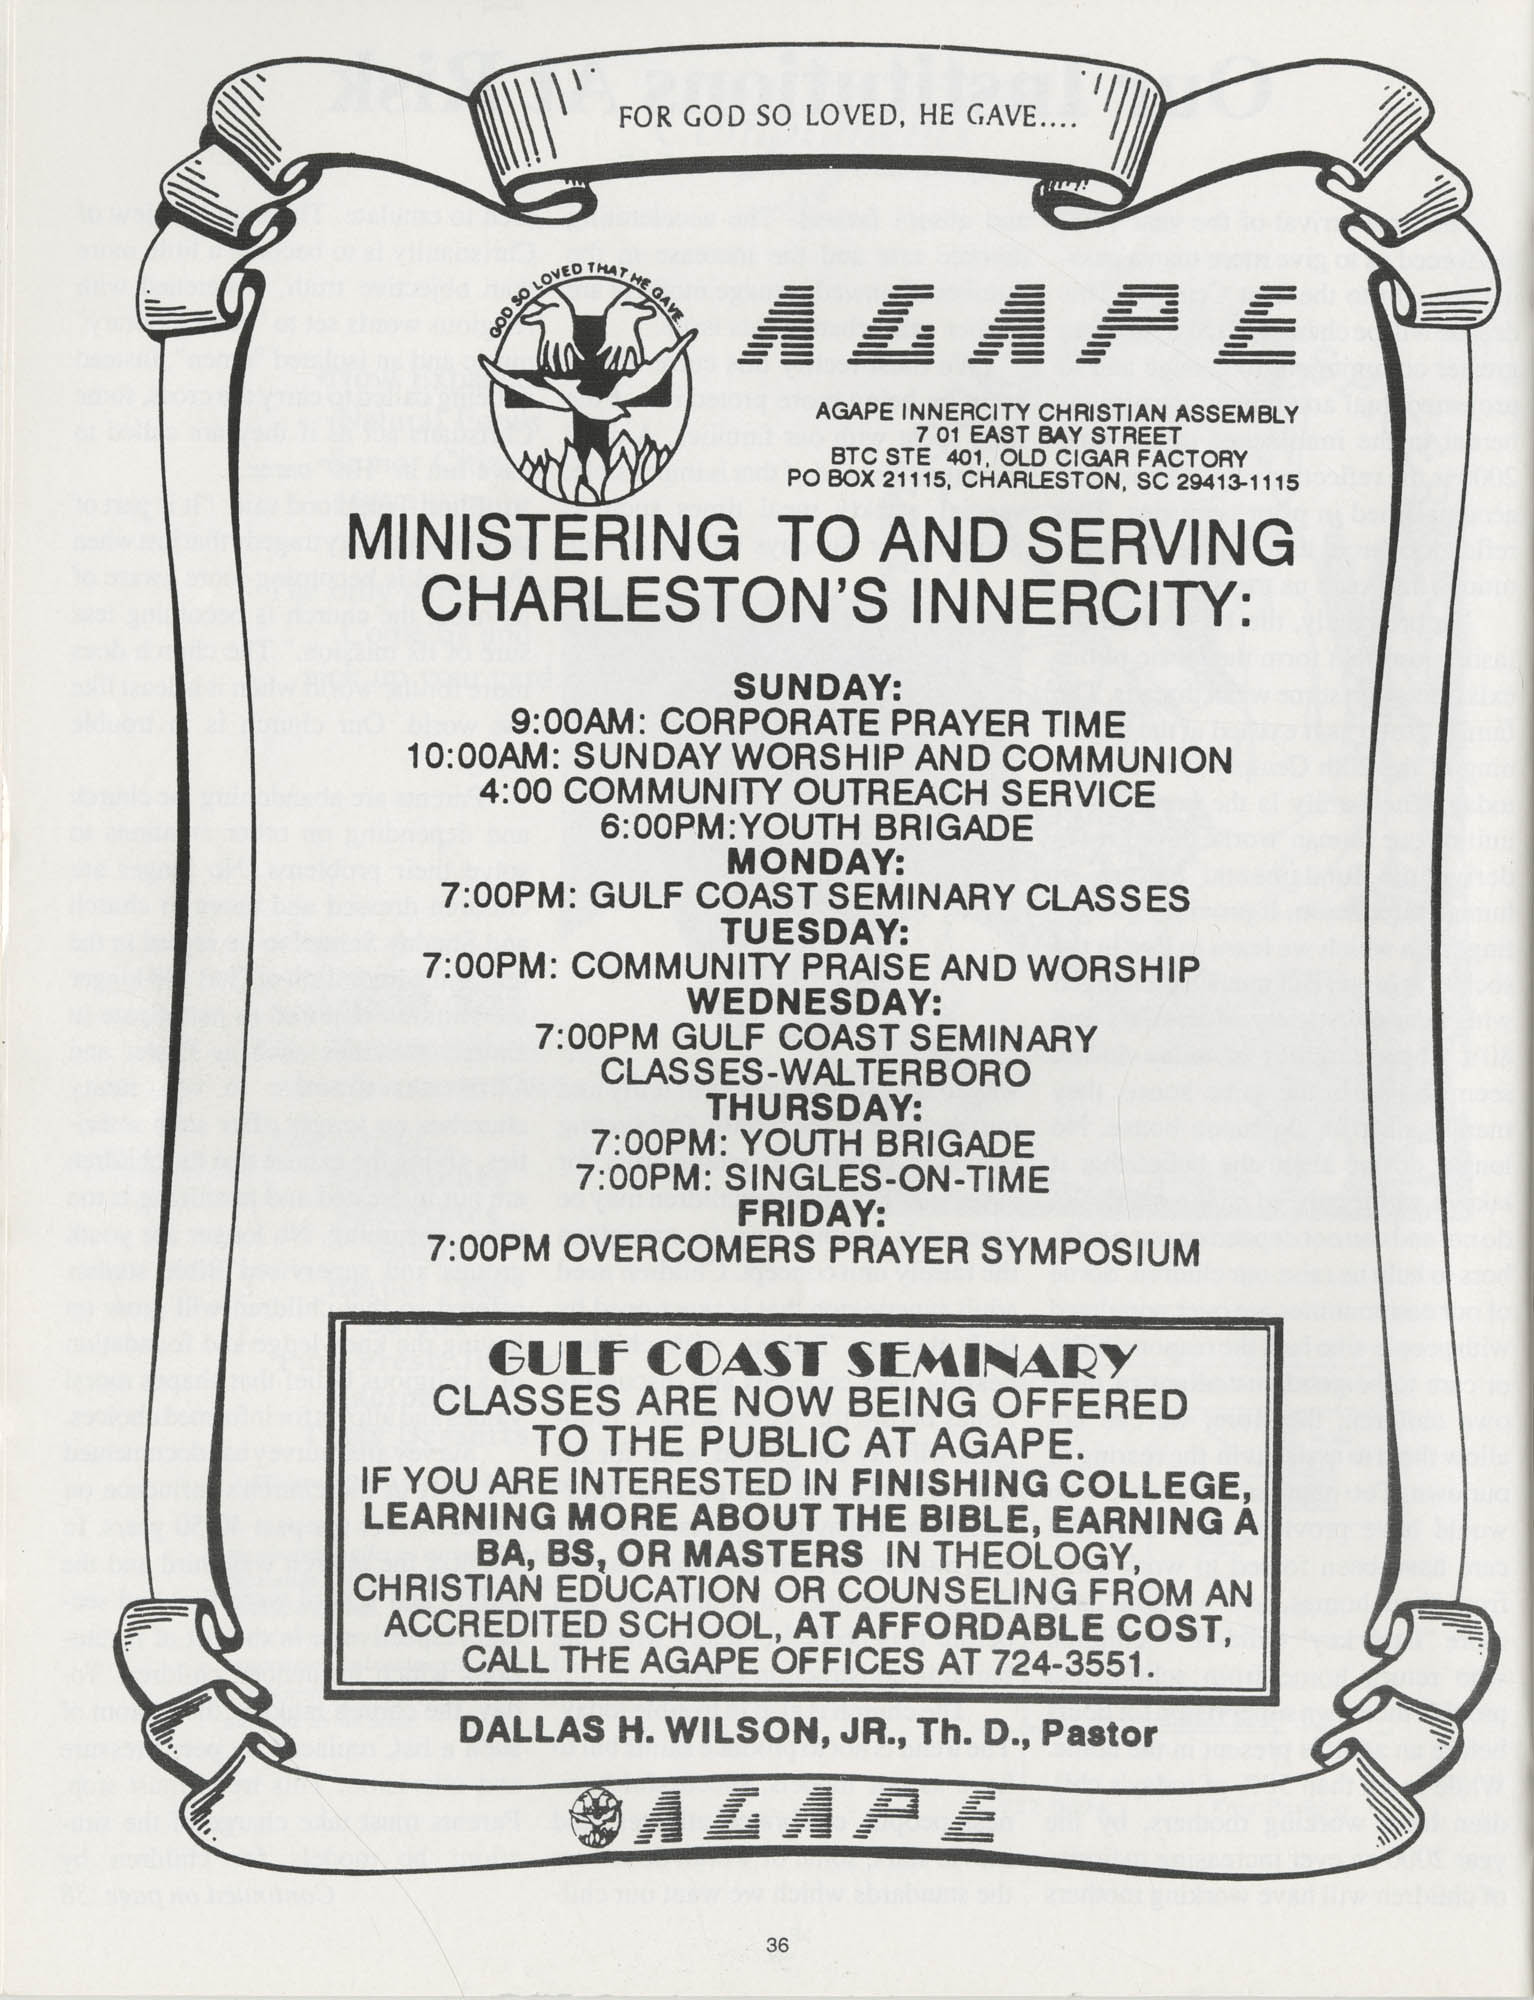 1990 NAACP Freedom Fund Magazine, Charleston Branch of the NAACP, 74th Anniversary, Page 36